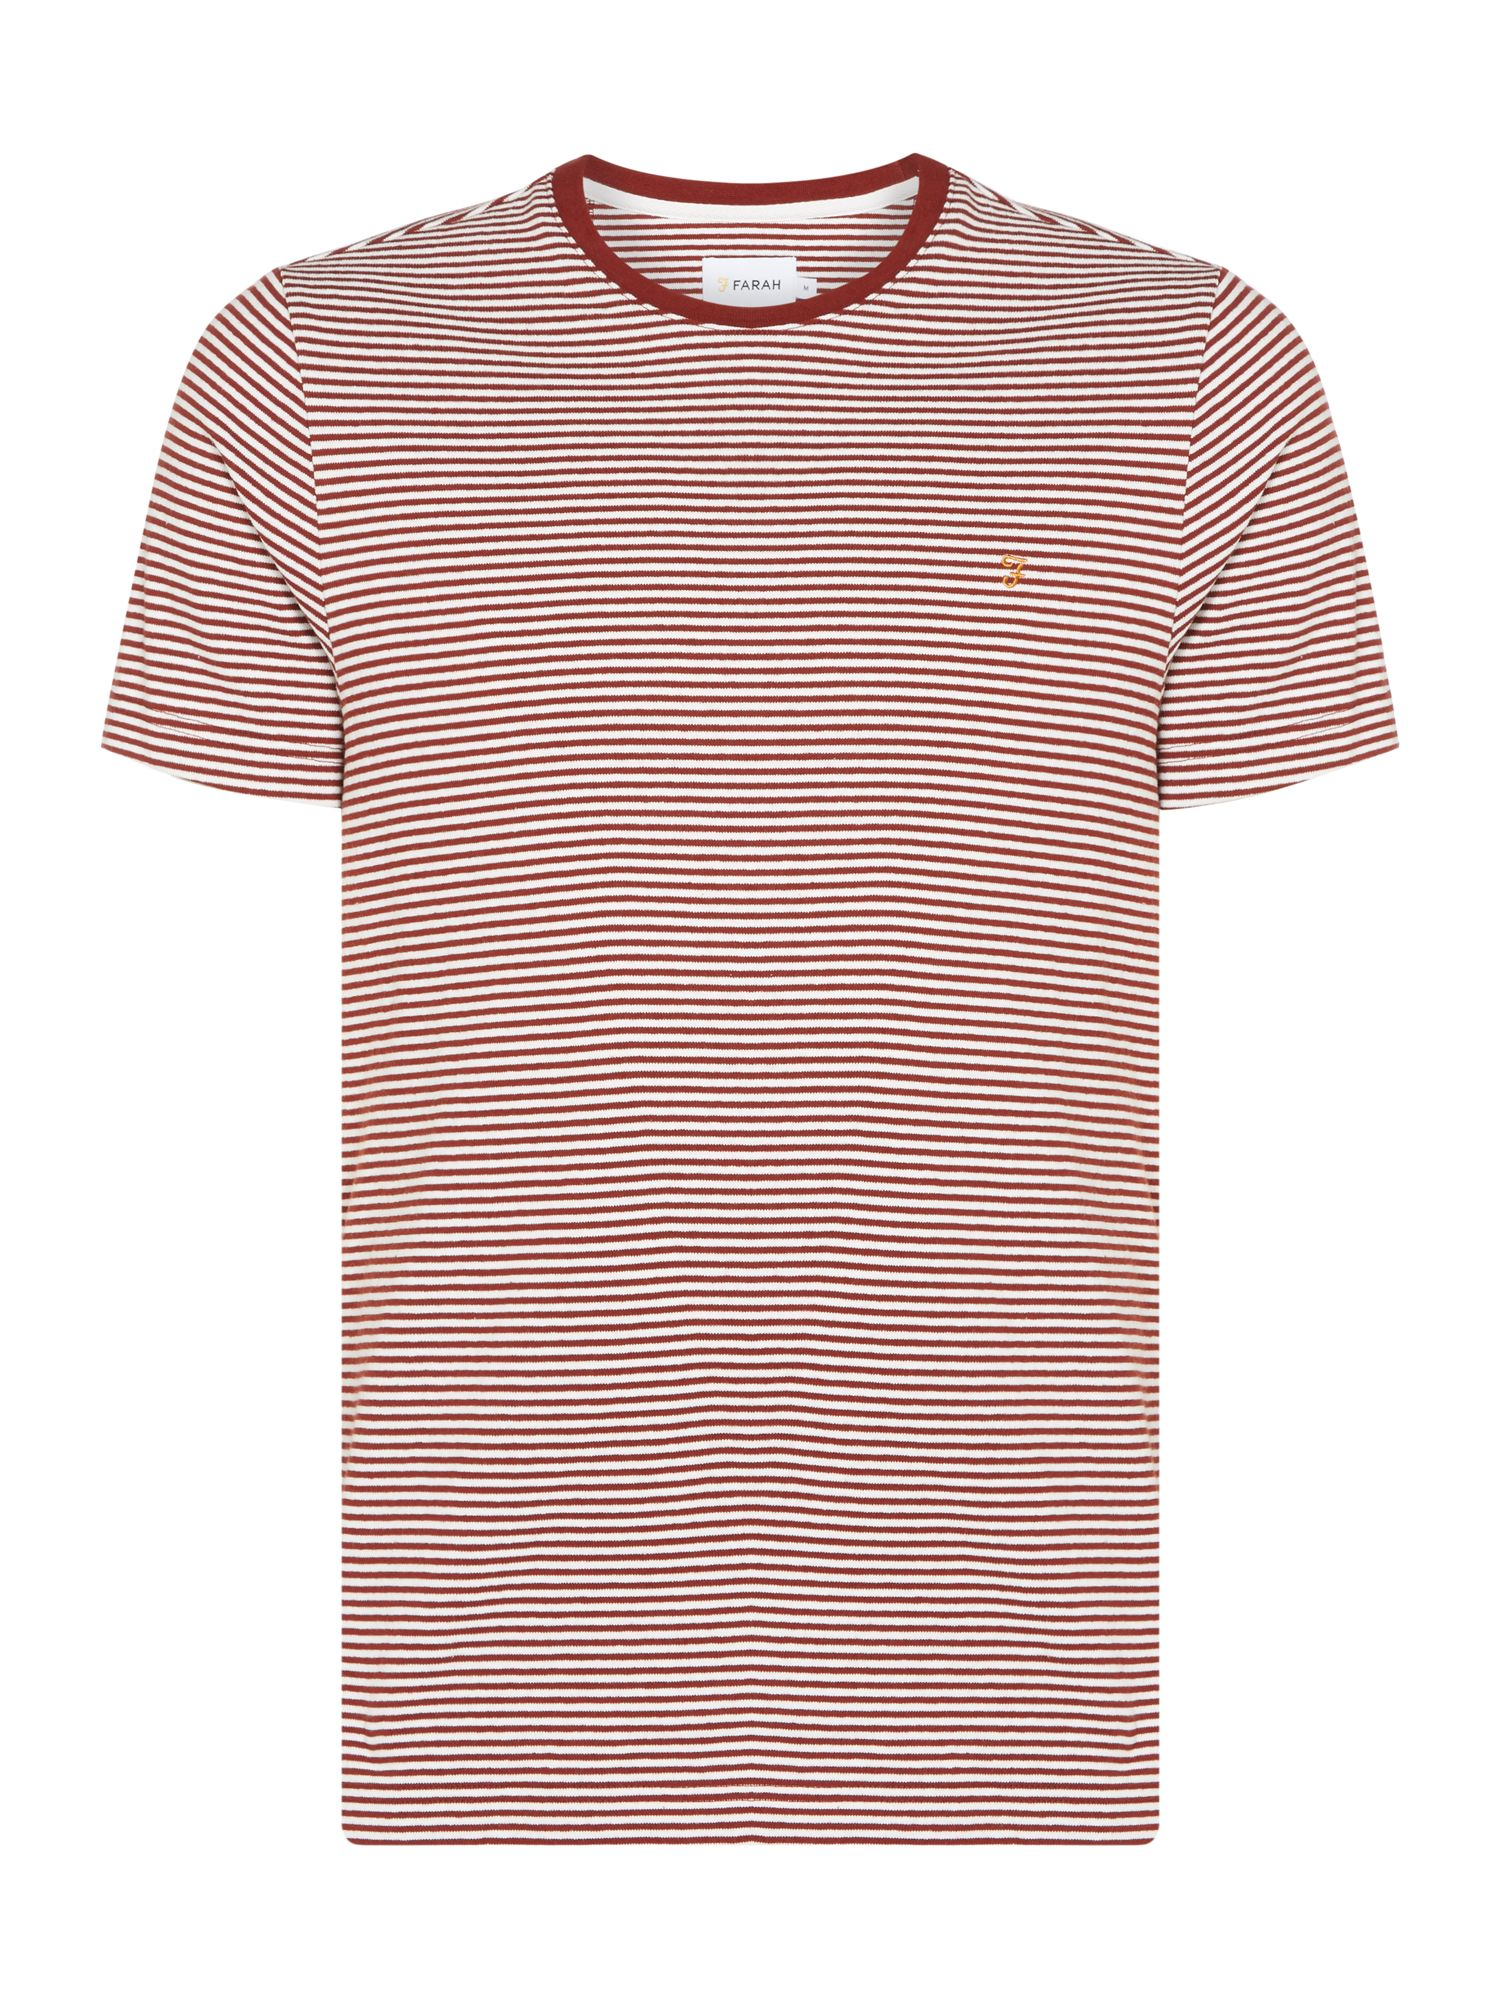 Men's Farah Vyner Yarn Dyed Stripe T-Shirt, Brick